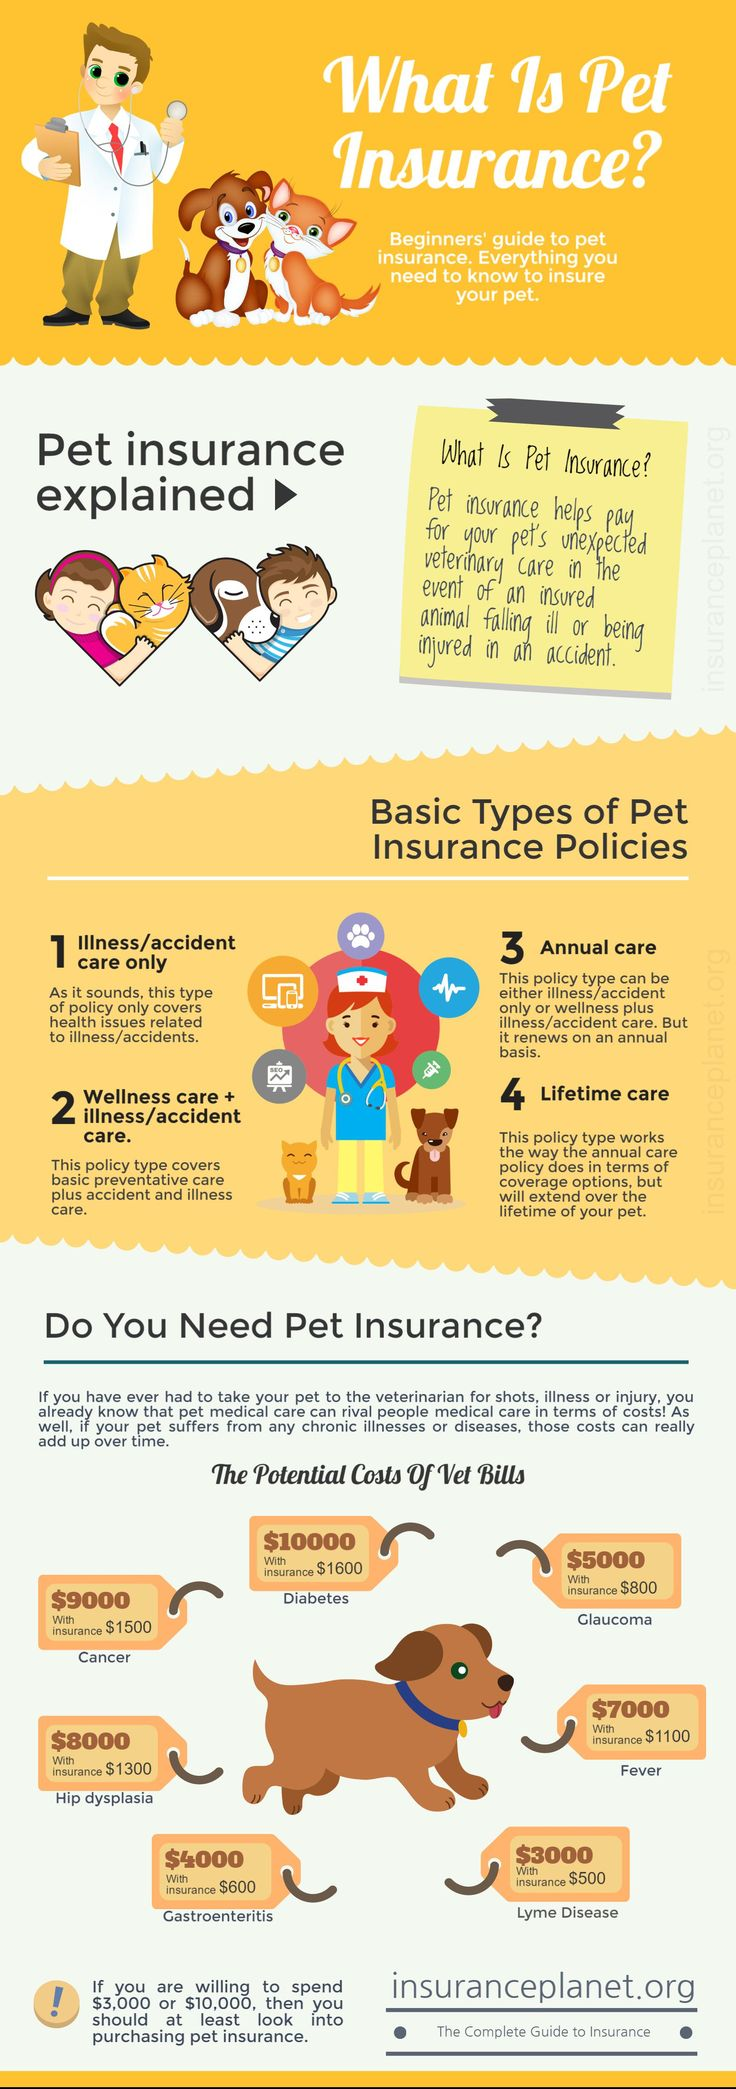 Pet insurance quotes blog 5 steps to finding the perfect pet insurance plan pet insurance pinterest pet insurance quotes pet insurance and pet care